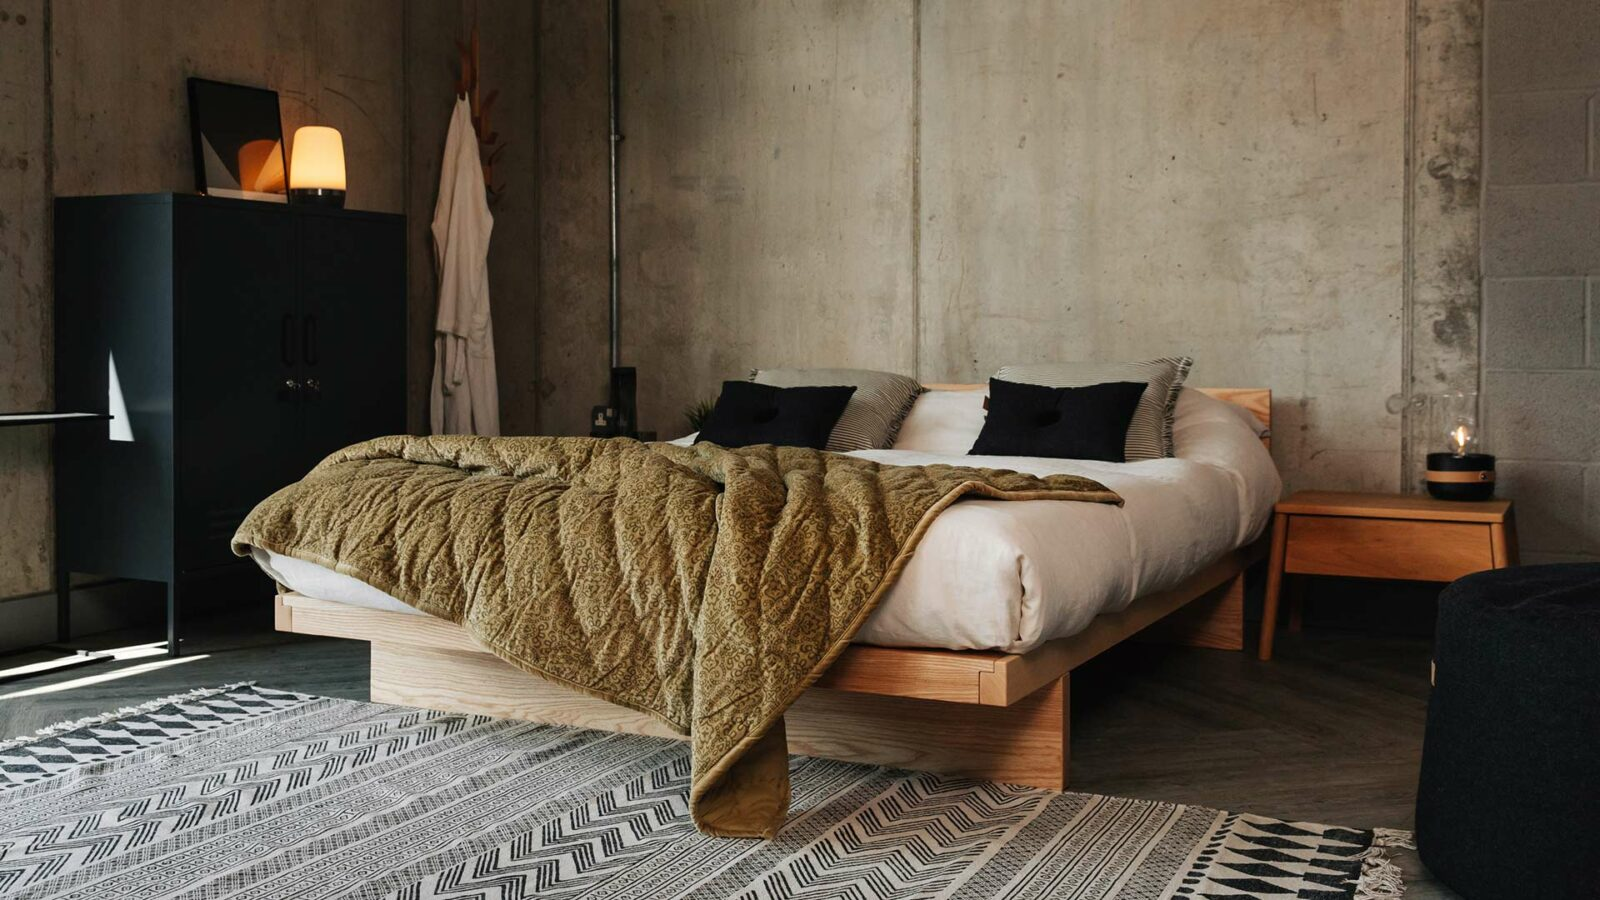 Solid Ash Kyoto Low Japanese Bed with Green Velvet Throw in Bedroom Setting